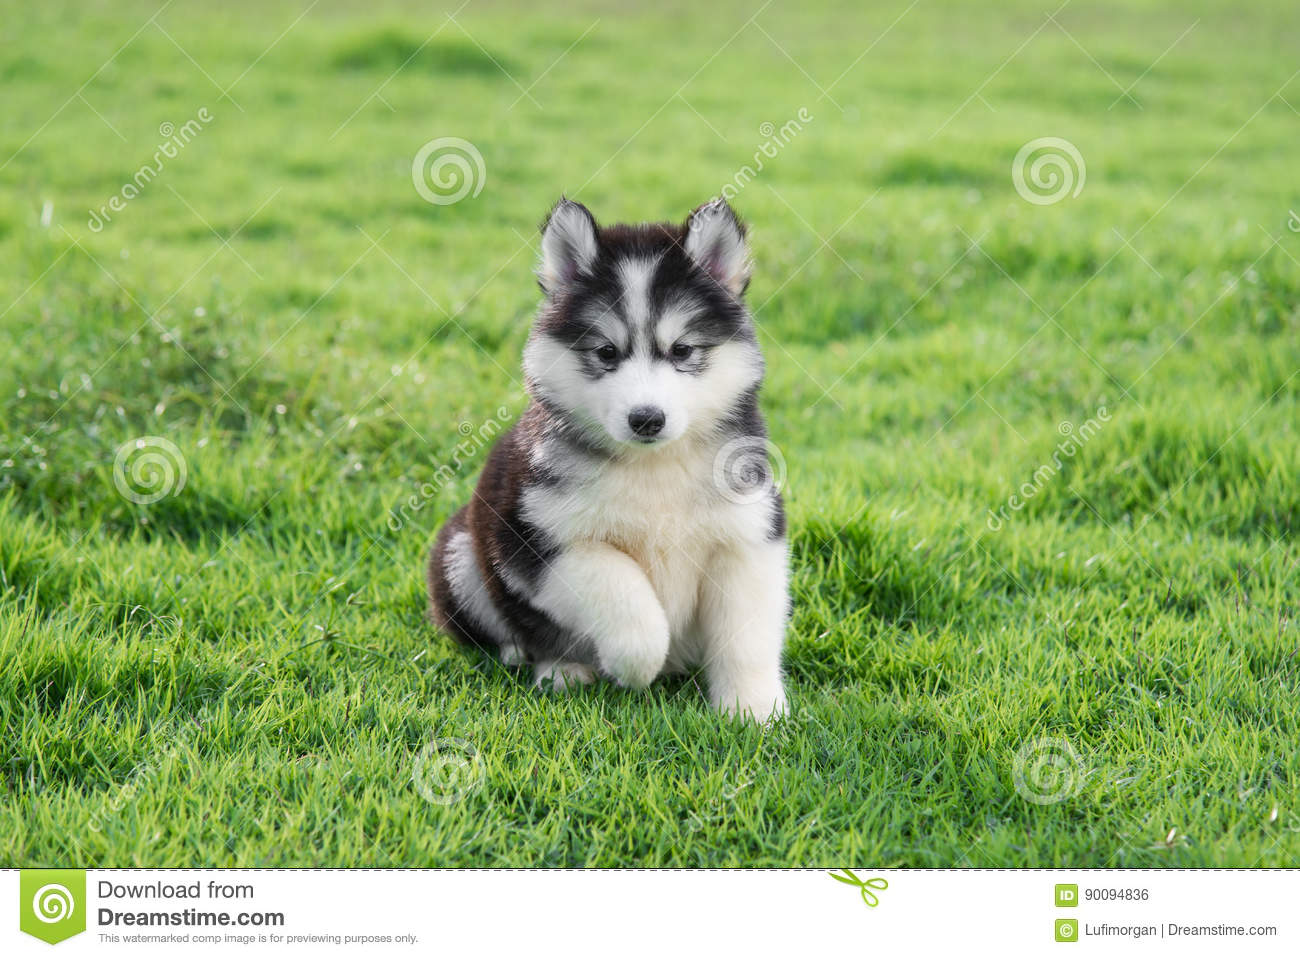 Cute Siberian Husky Puppy Stock Photo Image Of Spring 90094836